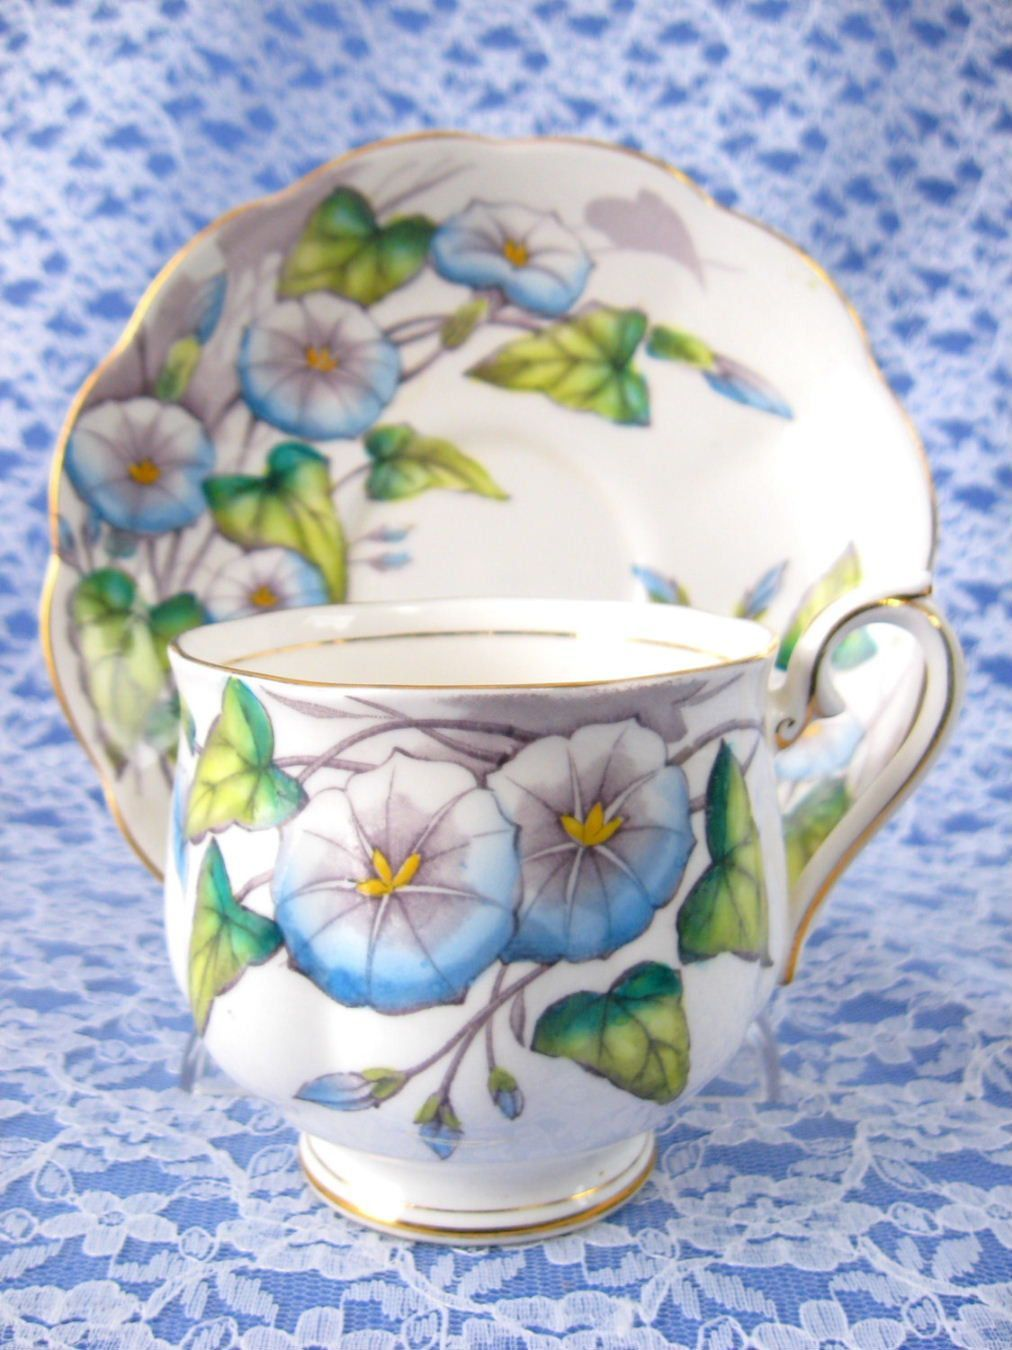 Royal Albert September Morning Glory Cup And Saucer Flower Of The Month 1940s Tea Cups Tea Cup Collection Cup And Saucer